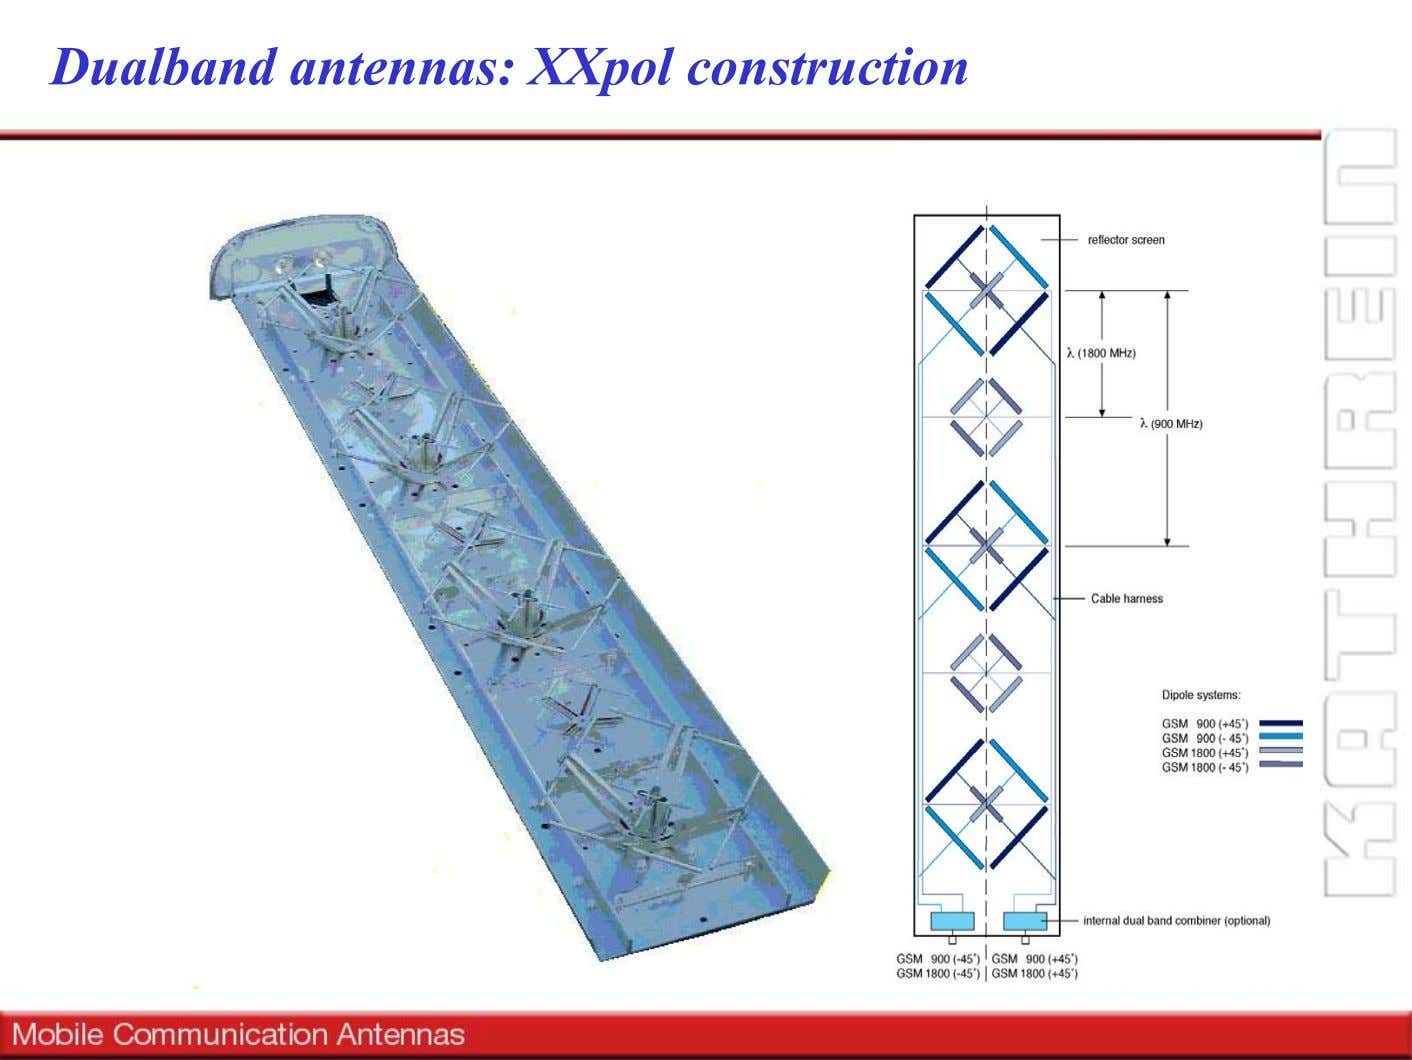 Dualband antennas: XXpol construction